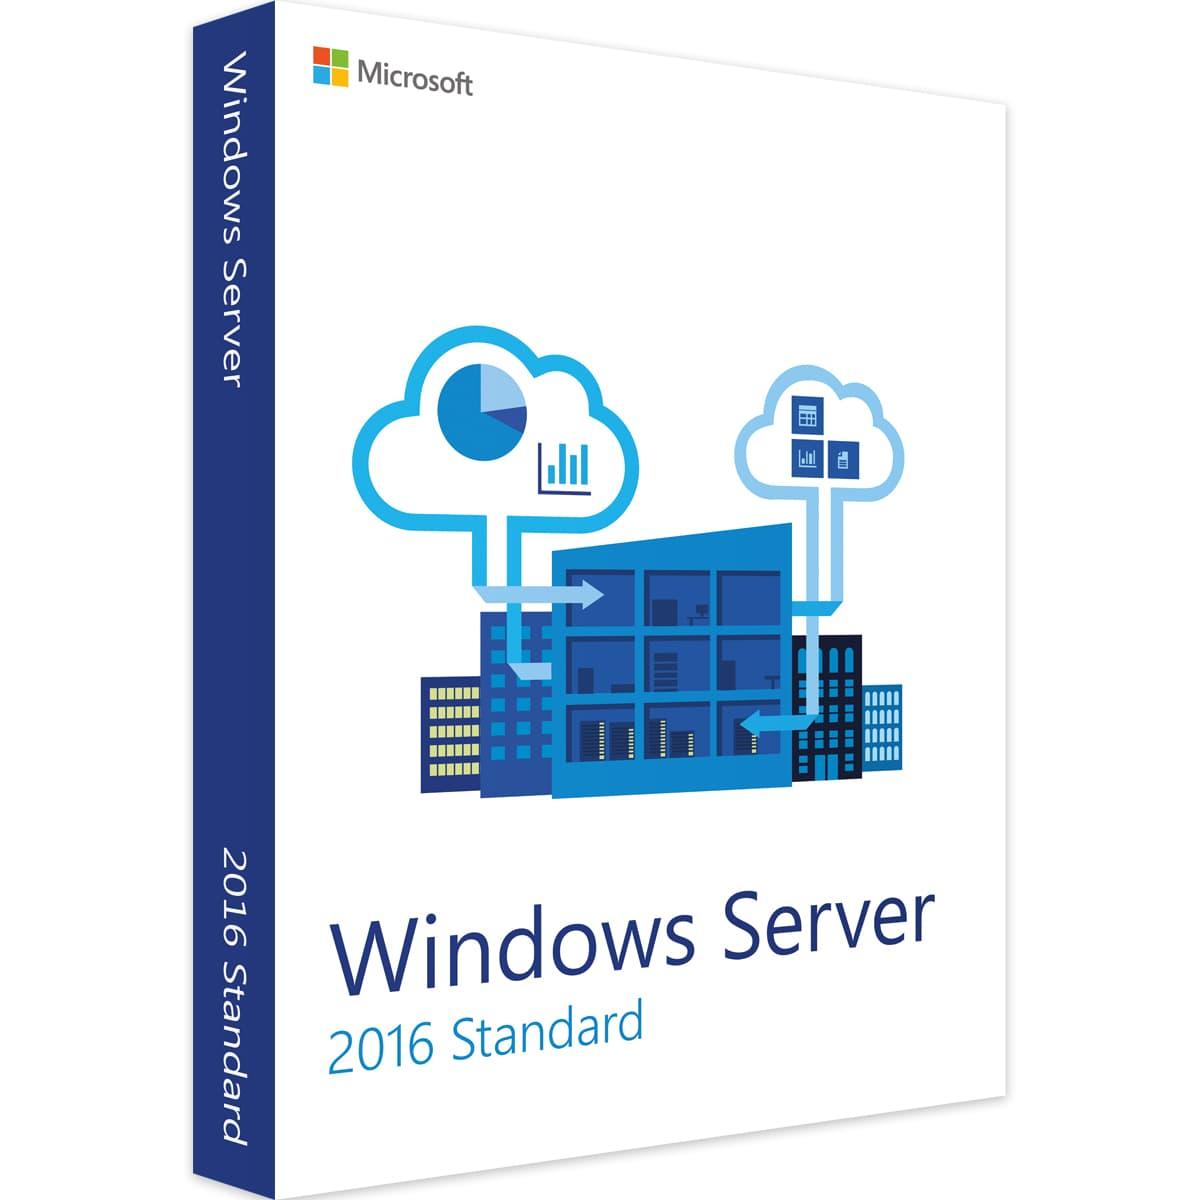 windows-server-2016-standard-min